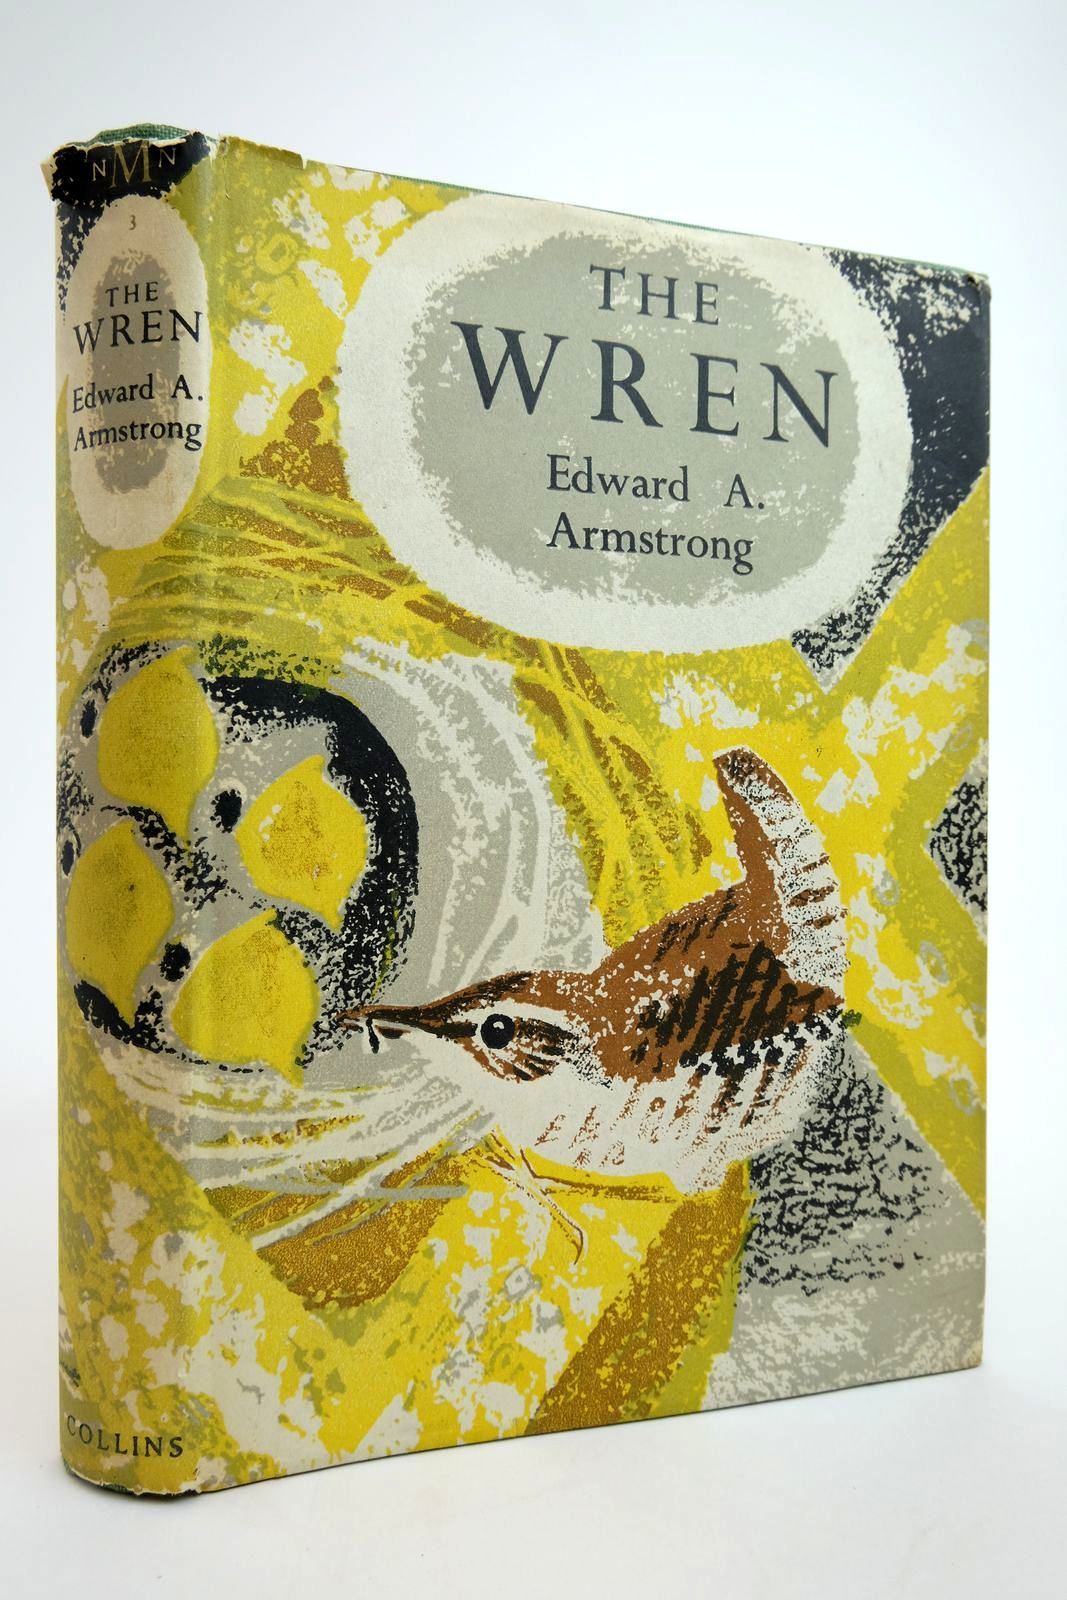 Photo of THE WREN (NMN 3) written by Armstrong, Edward A. published by Collins (STOCK CODE: 2134991)  for sale by Stella & Rose's Books